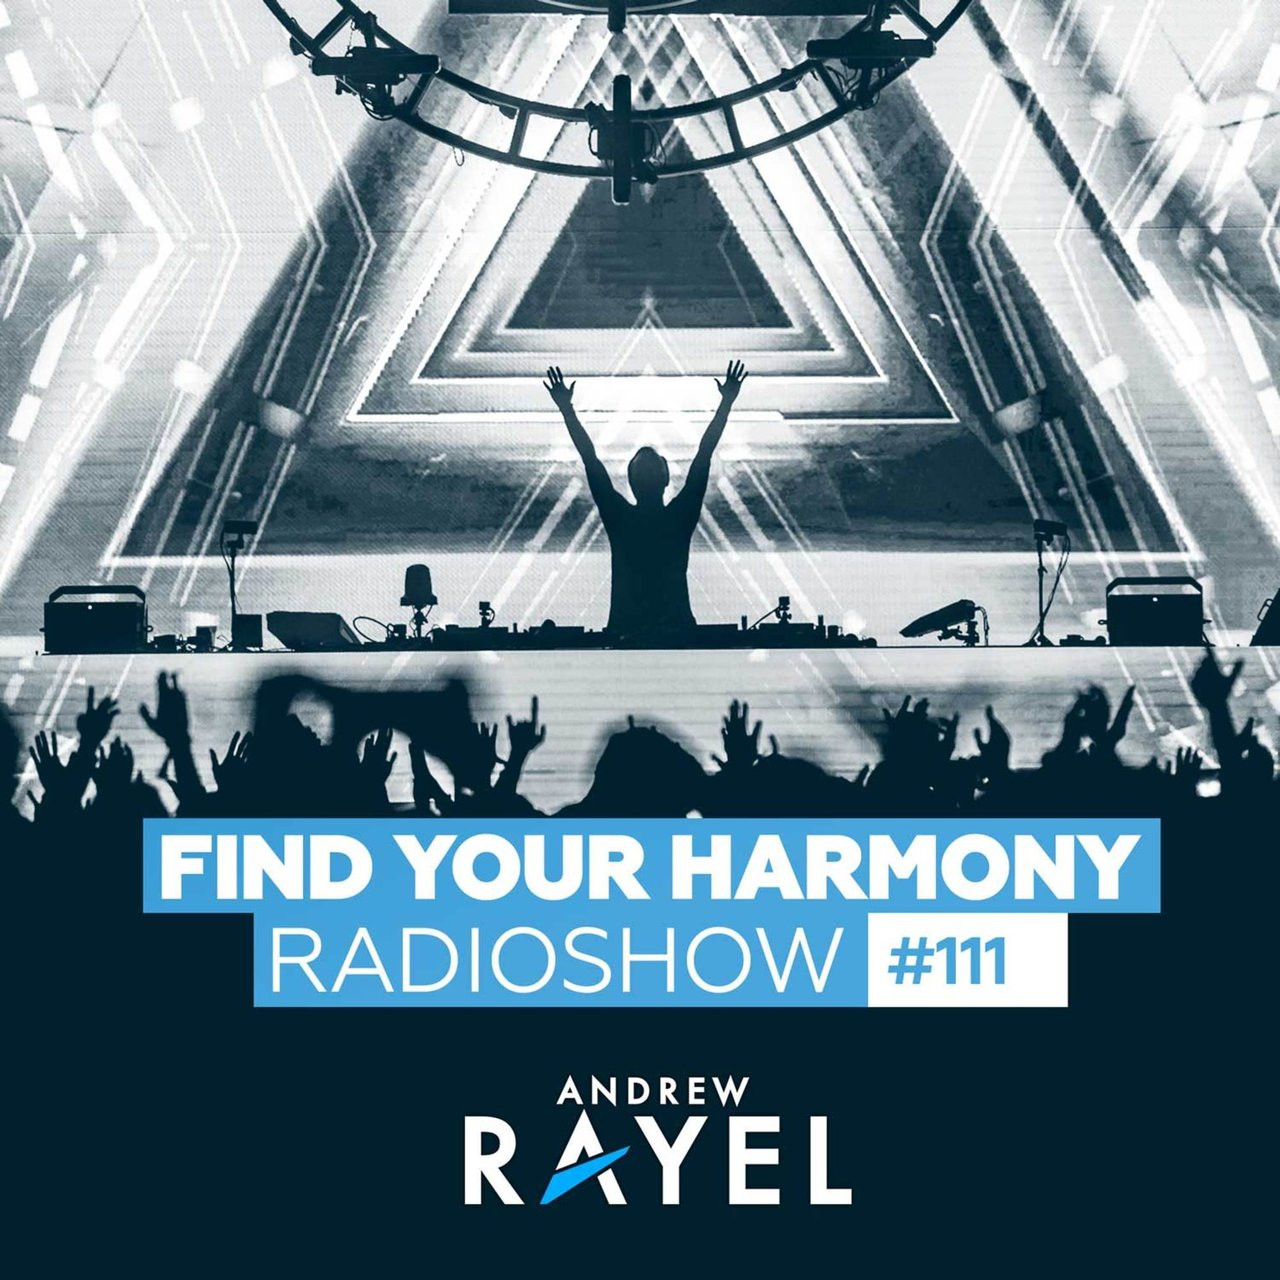 Find Your Harmony Radioshow #111